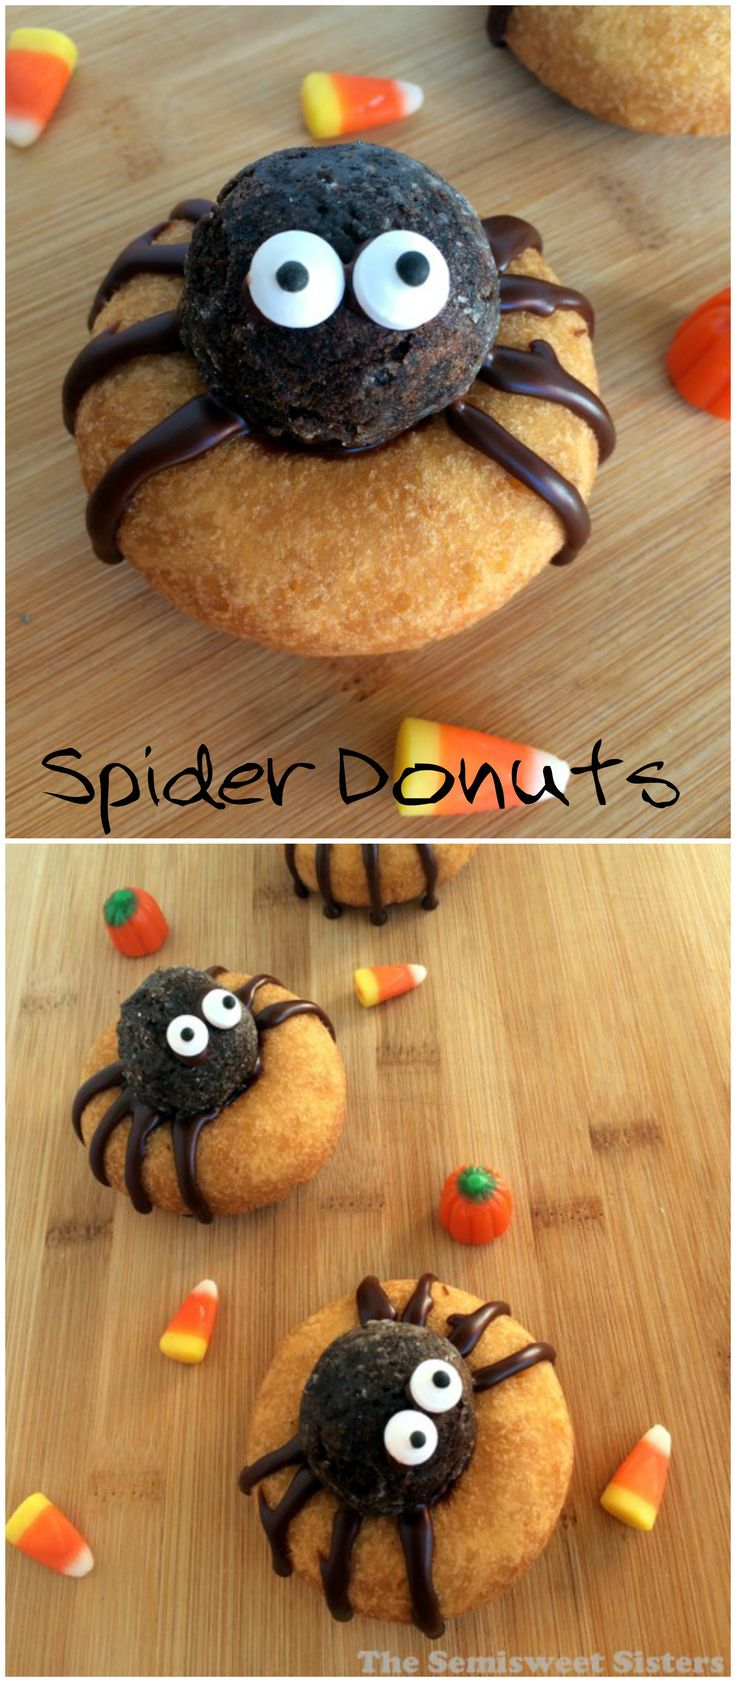 Halloween Spider Donuts, No Bake, easy Halloween recipe! These are so cute! Used donuts and chocolate donut holes!